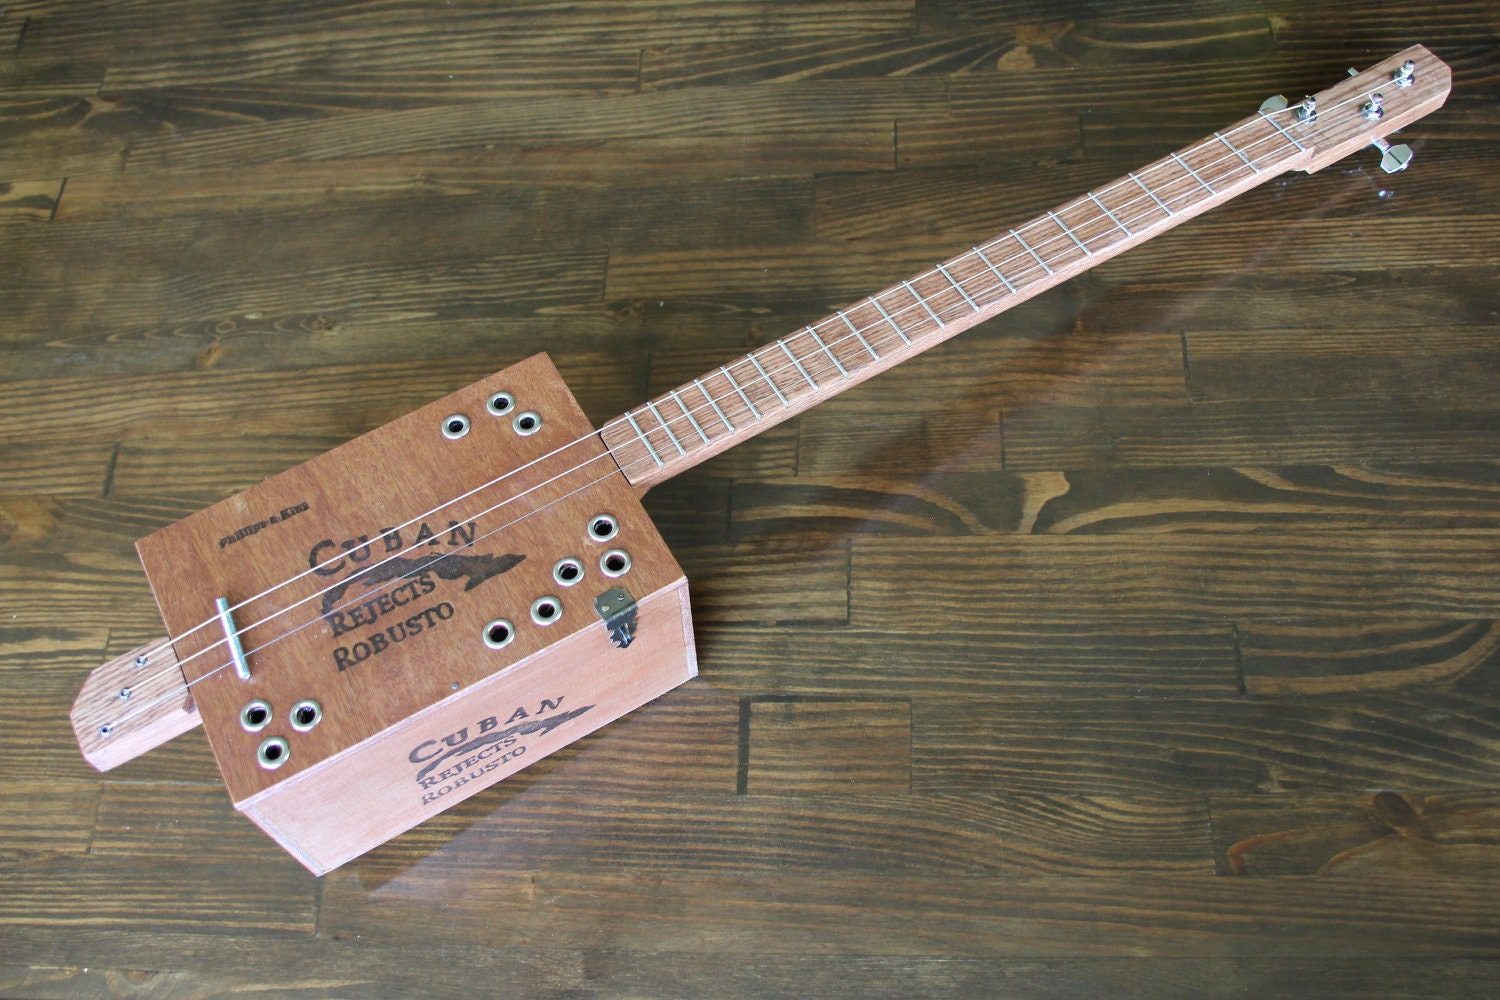 cigar box guitar 3 string. Black Bedroom Furniture Sets. Home Design Ideas